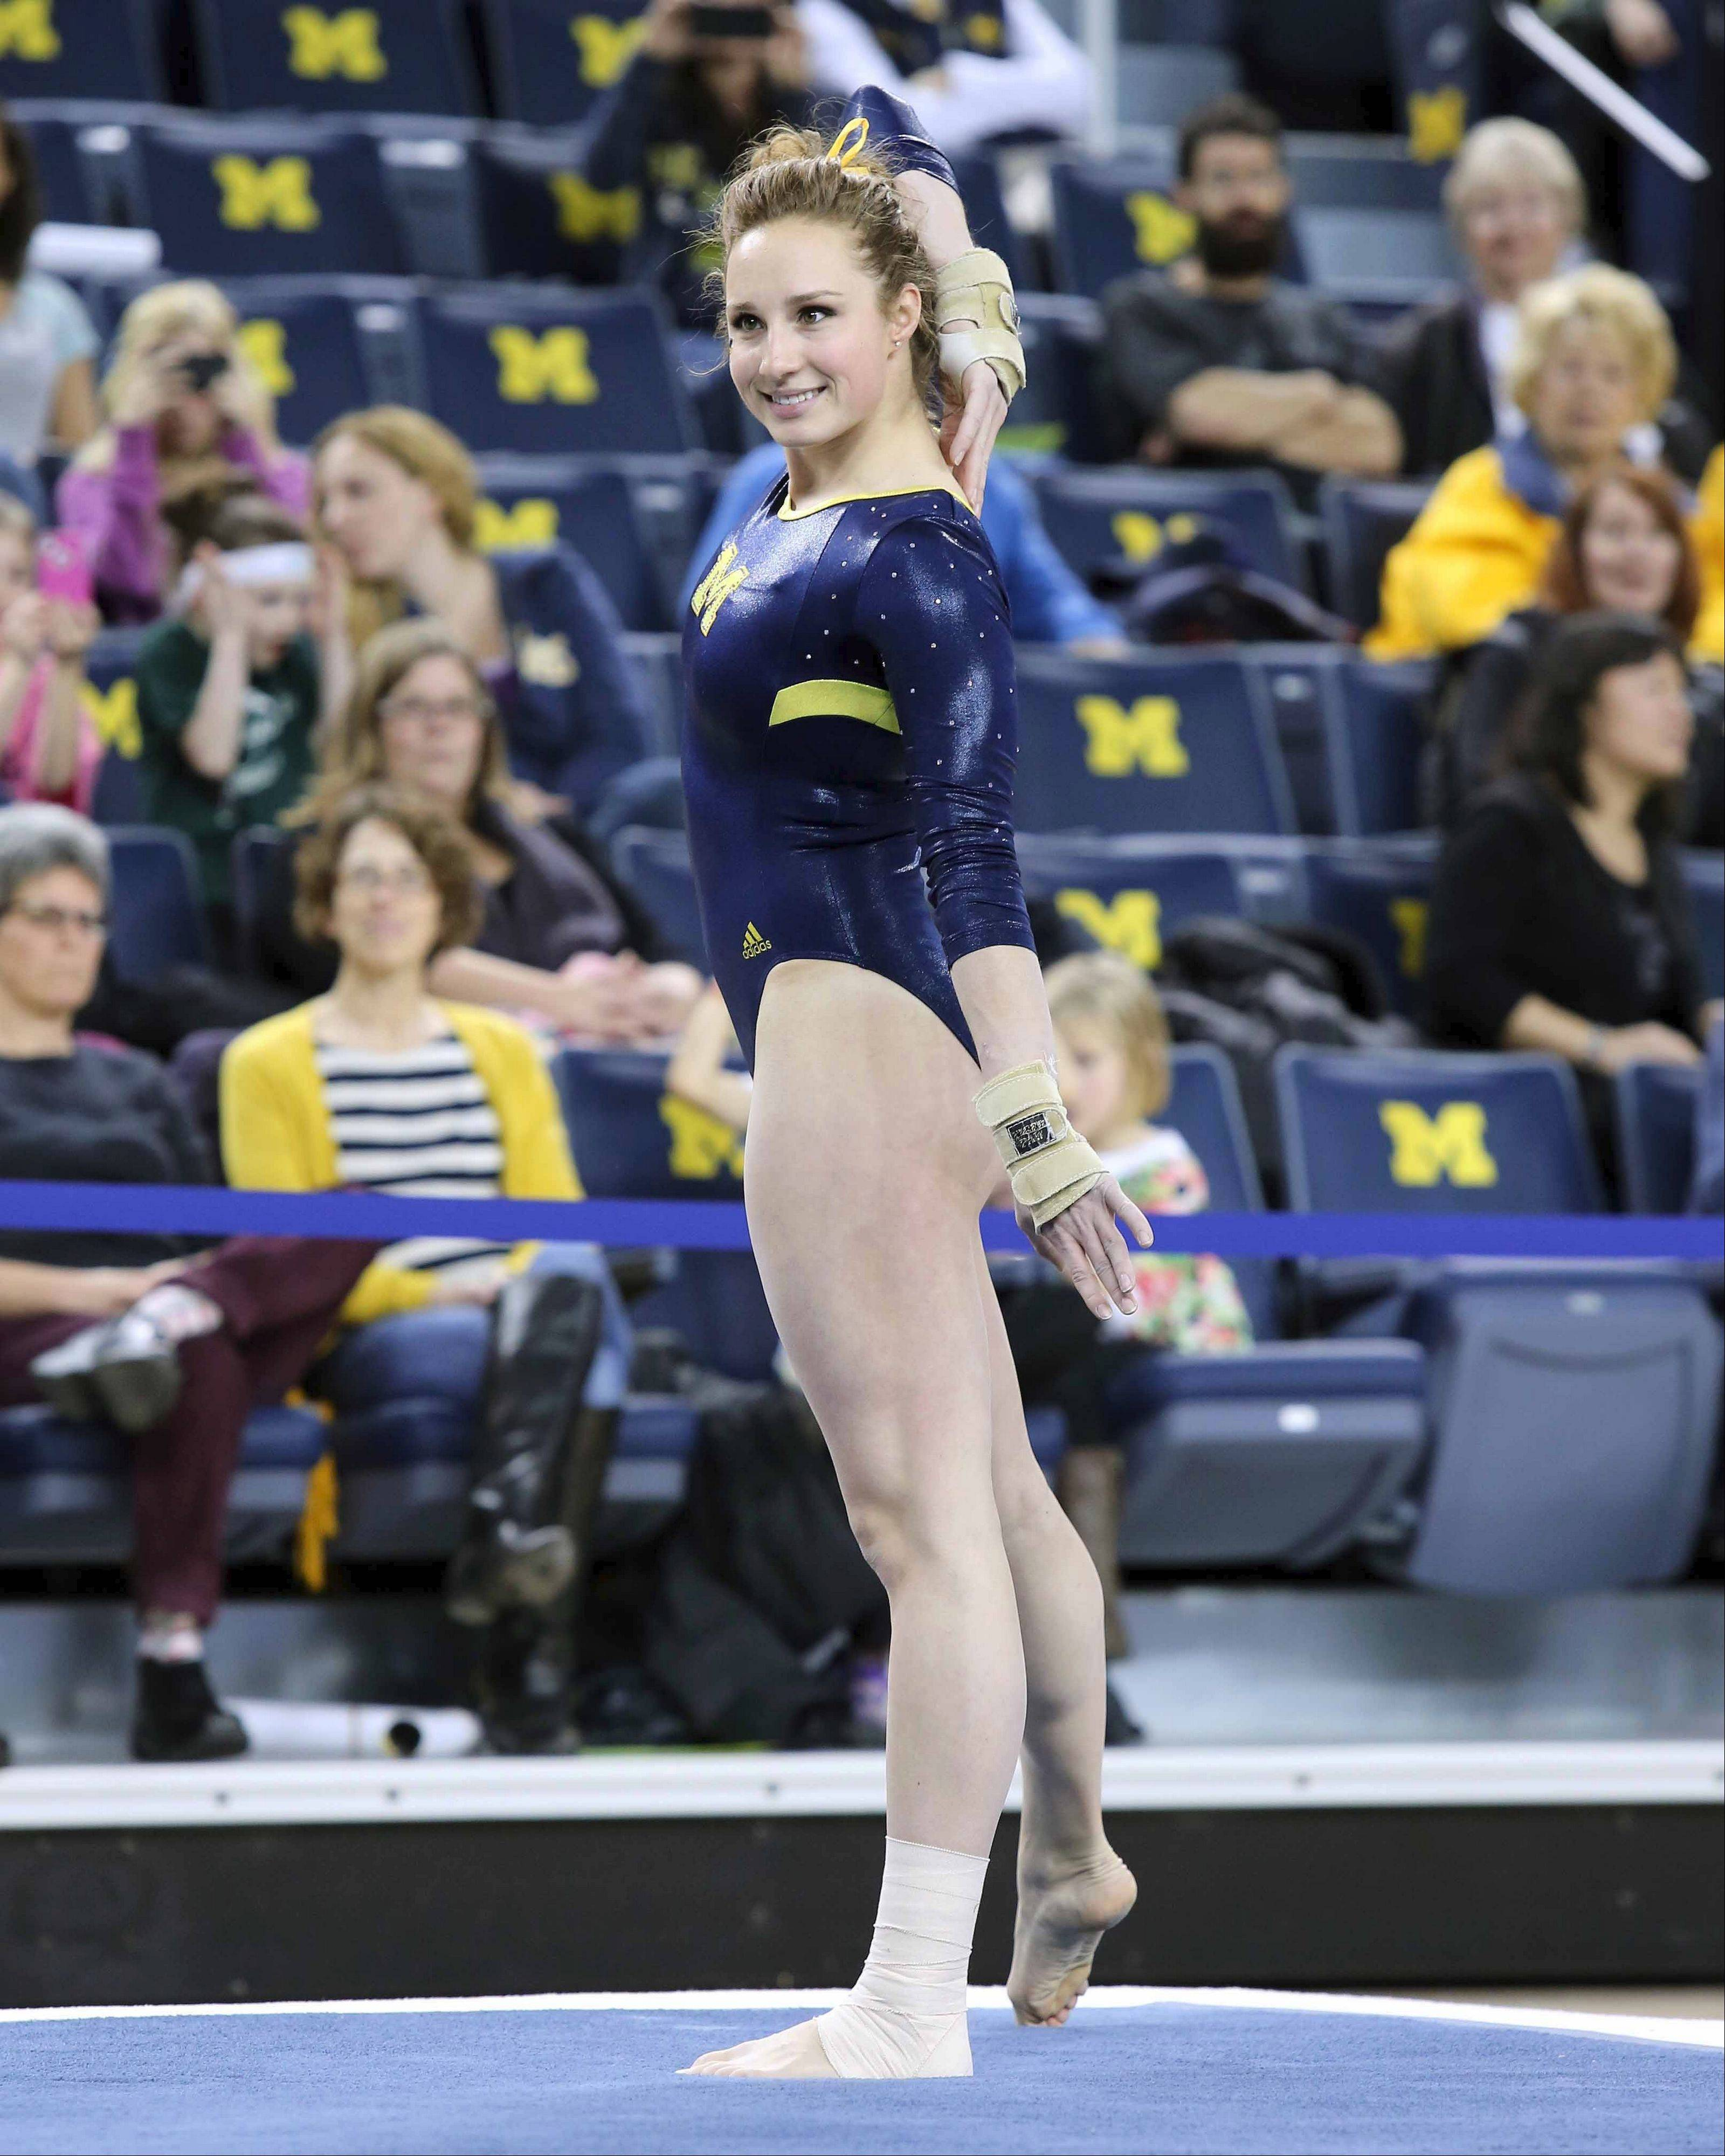 Gymnast Katie Zurales has had plenty of injuries in her career. Now she's enjoying a healthy senior season and leading the University of Michigan to a No. 3 ranking.